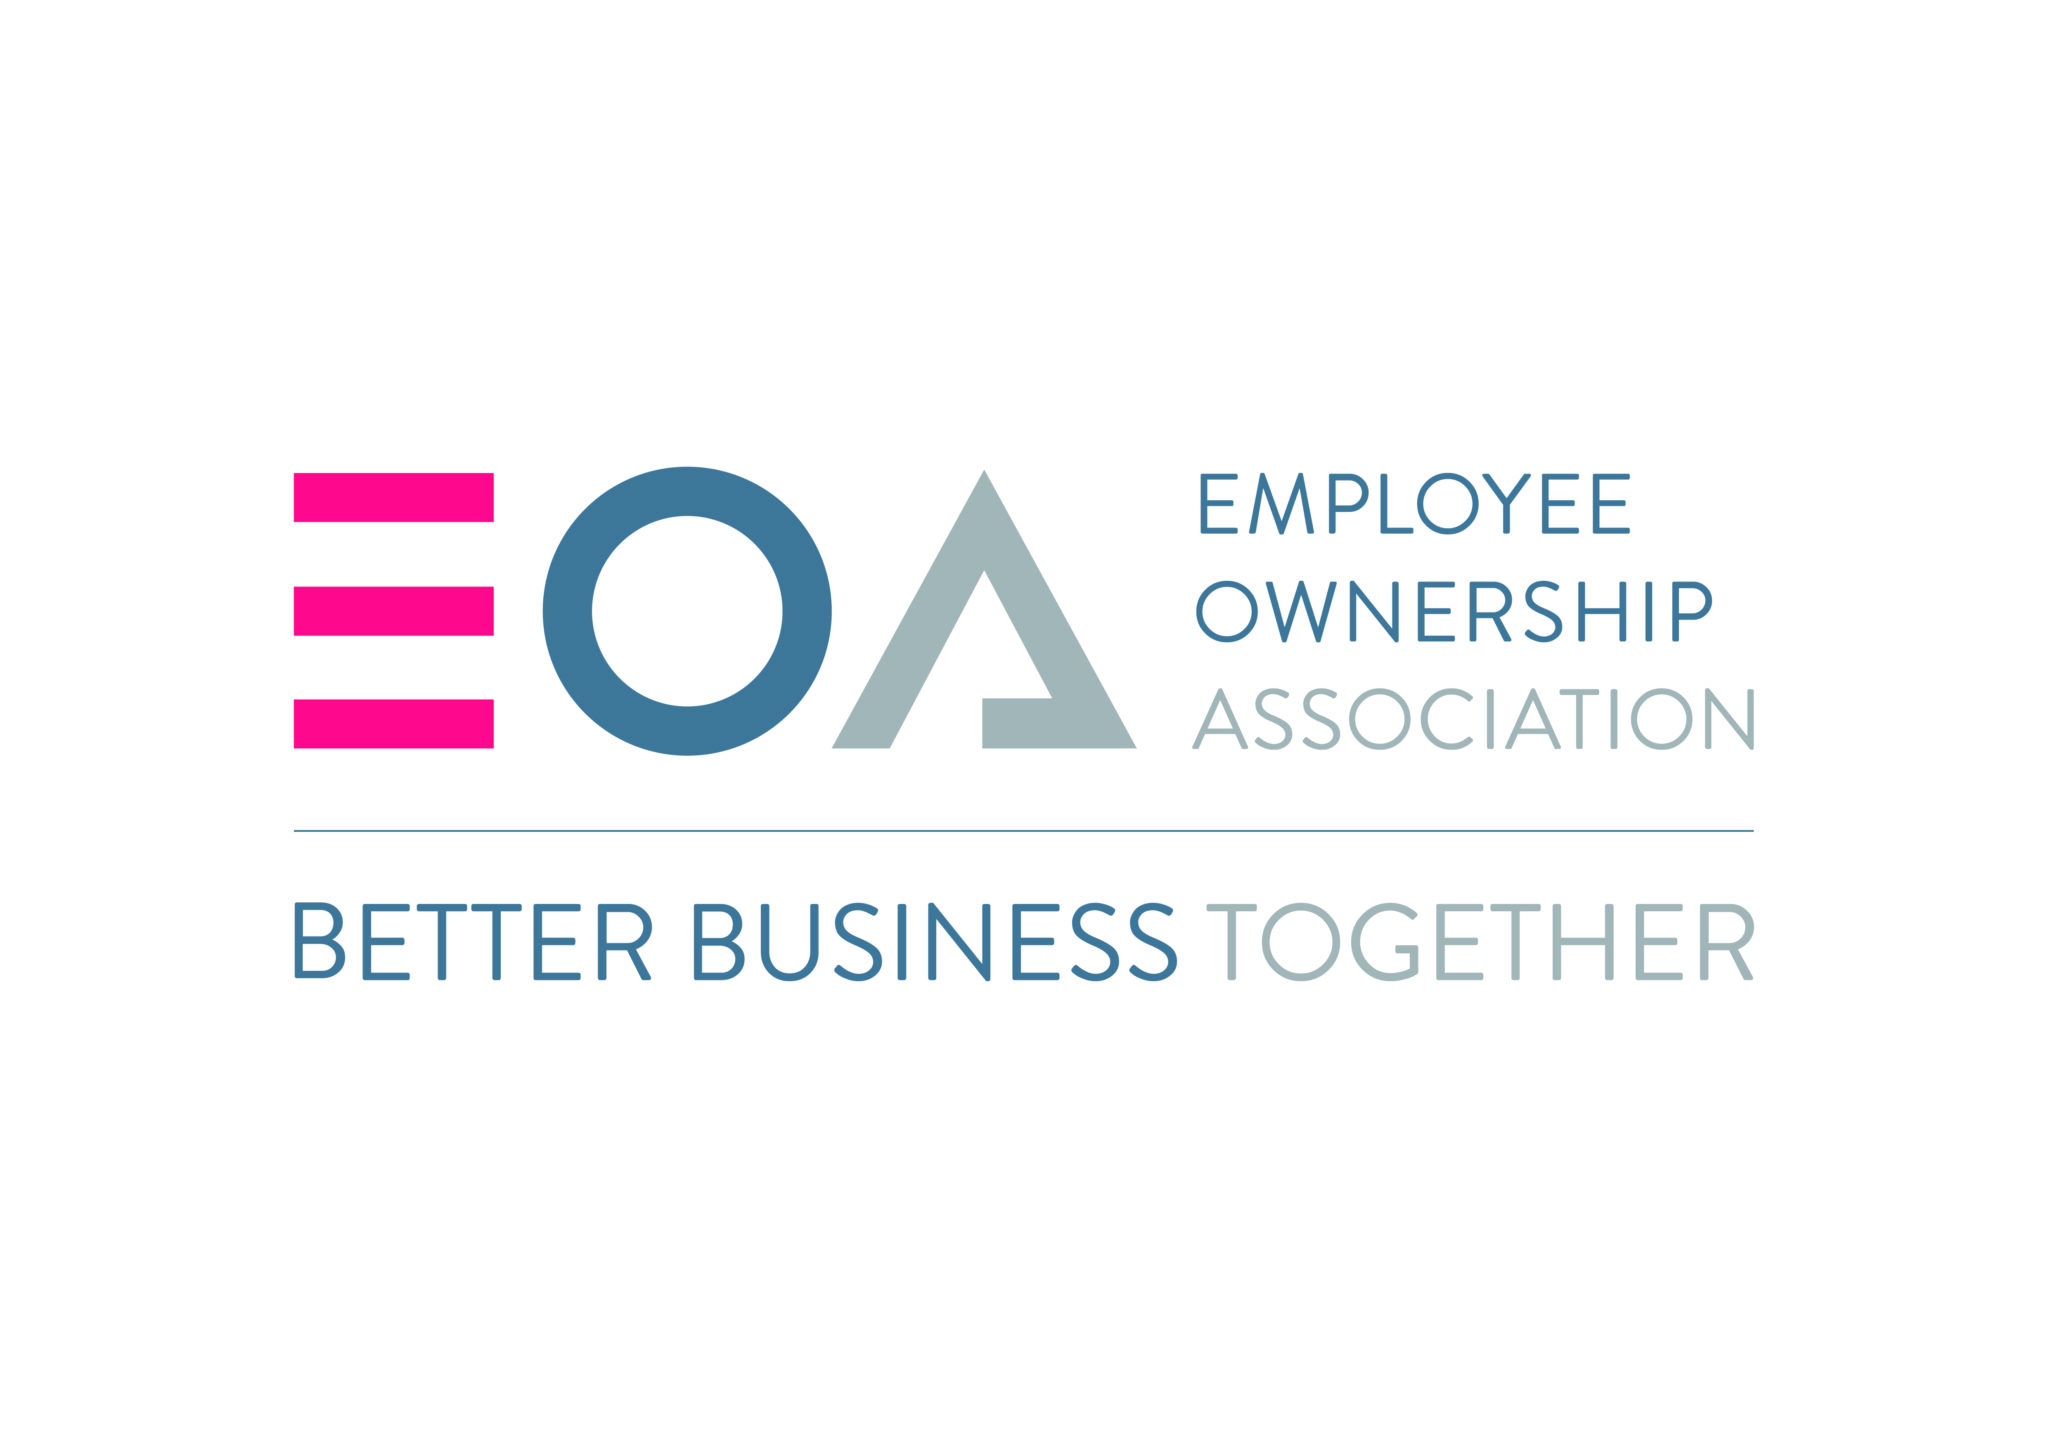 Logo of the Employee Ownership Association